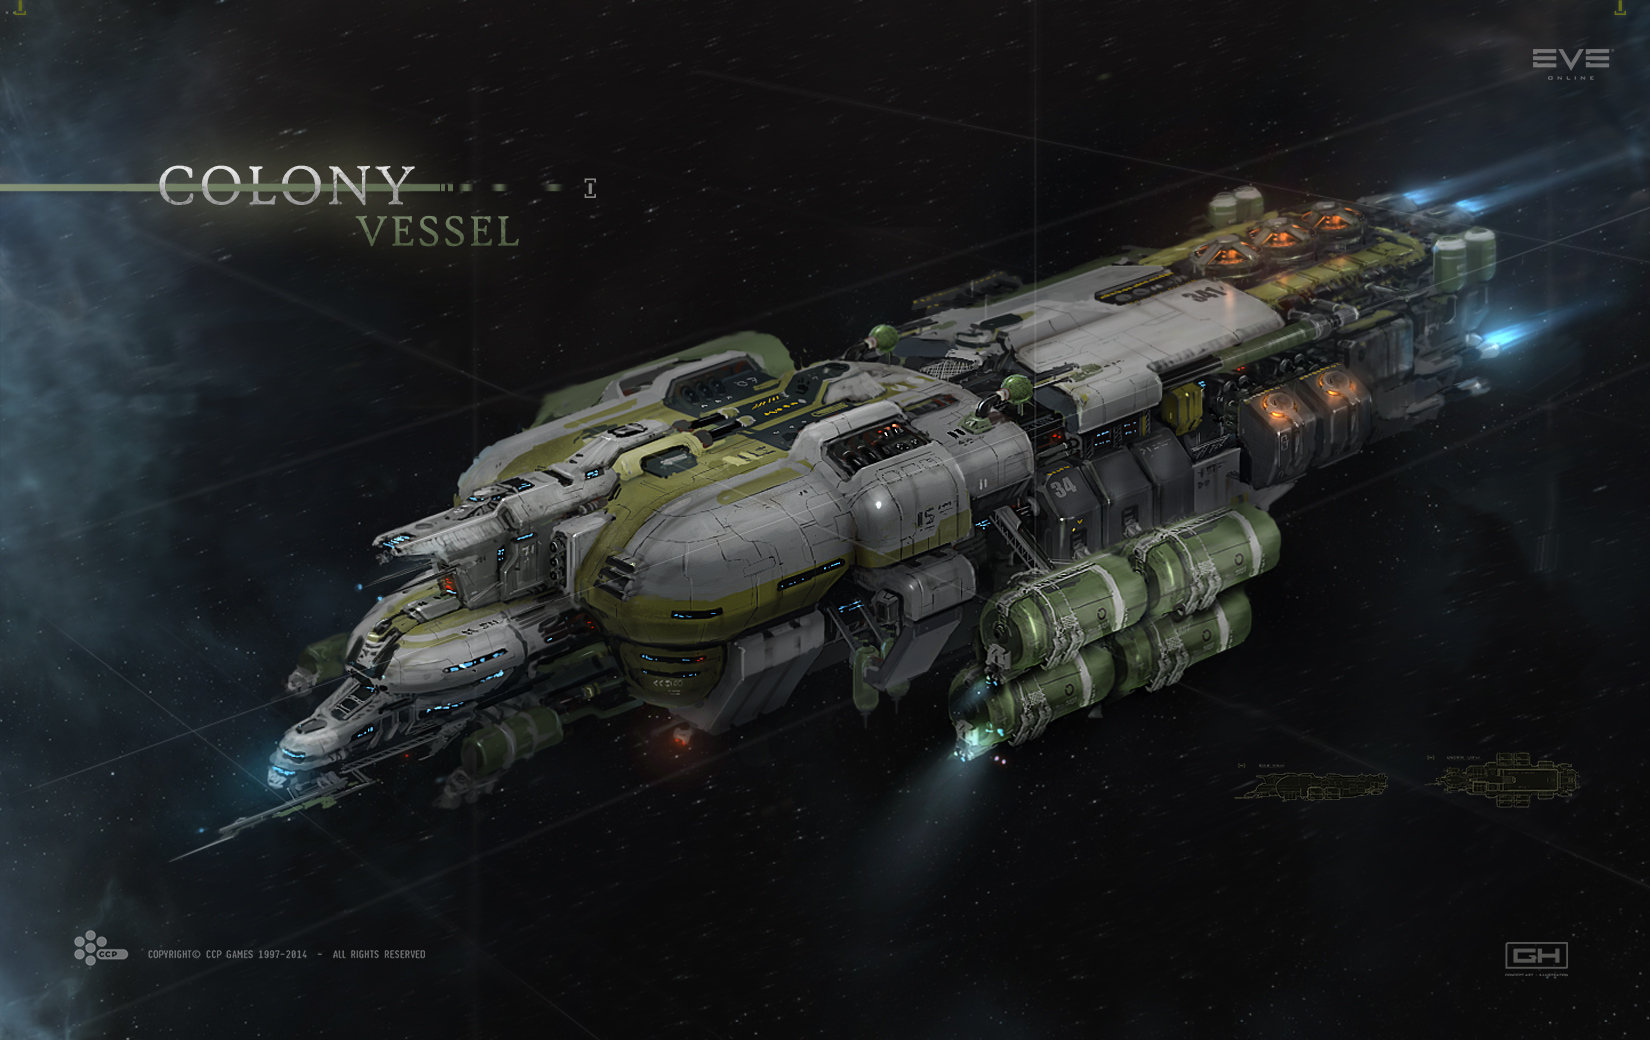 eve online mining drones with Vehicles Space on Rakshasa AISN Bomber 67288719 besides The Hangar Ship Sizes as well Kotw Reallllly Big Noctis as well Widow also The Risk Of Early Adoption.